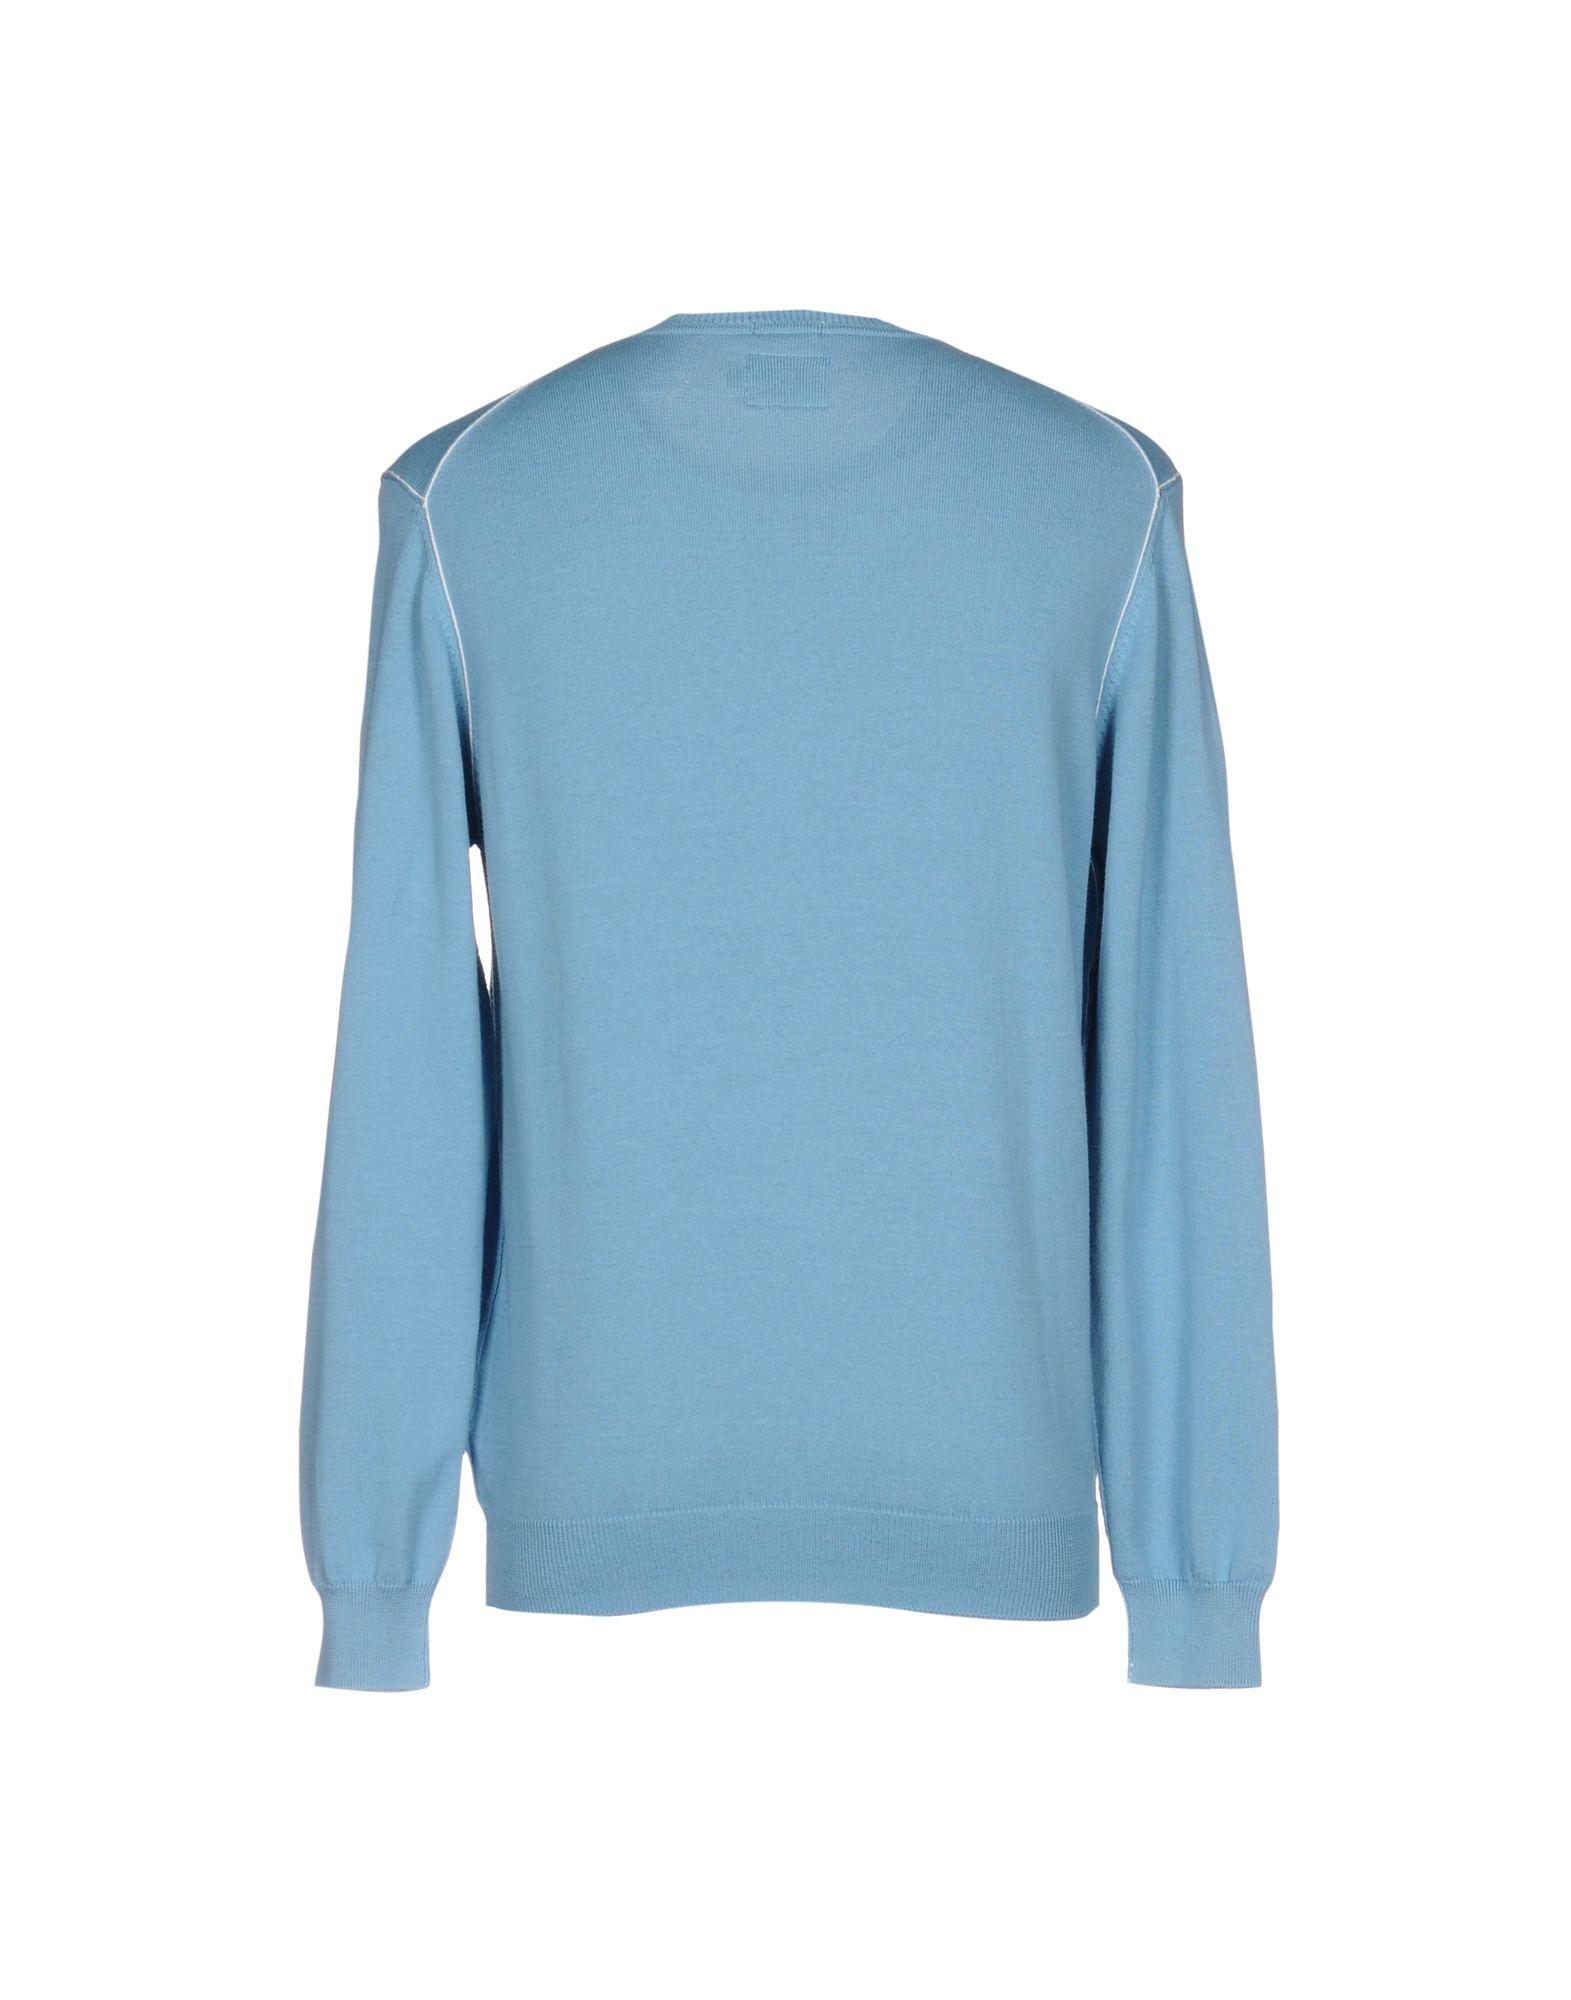 Pepe Jeans Cotton Sweater in Sky Blue (Blue) for Men